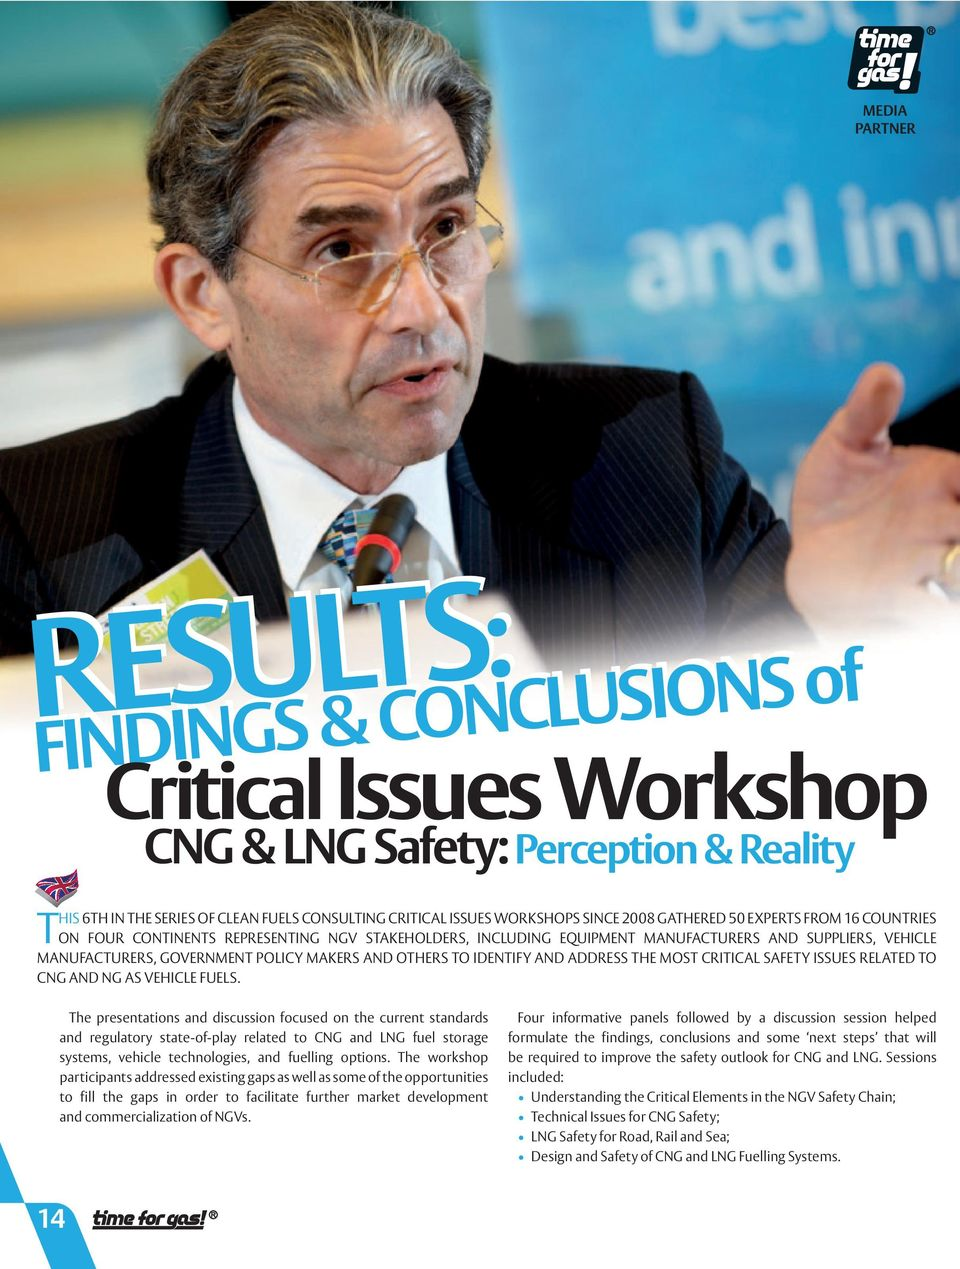 IDENTIFY AND ADDRESS THE MOST CRITICAL SAFETY ISSUES RELATED TO CNG AND NG AS VEHICLE FUELS.